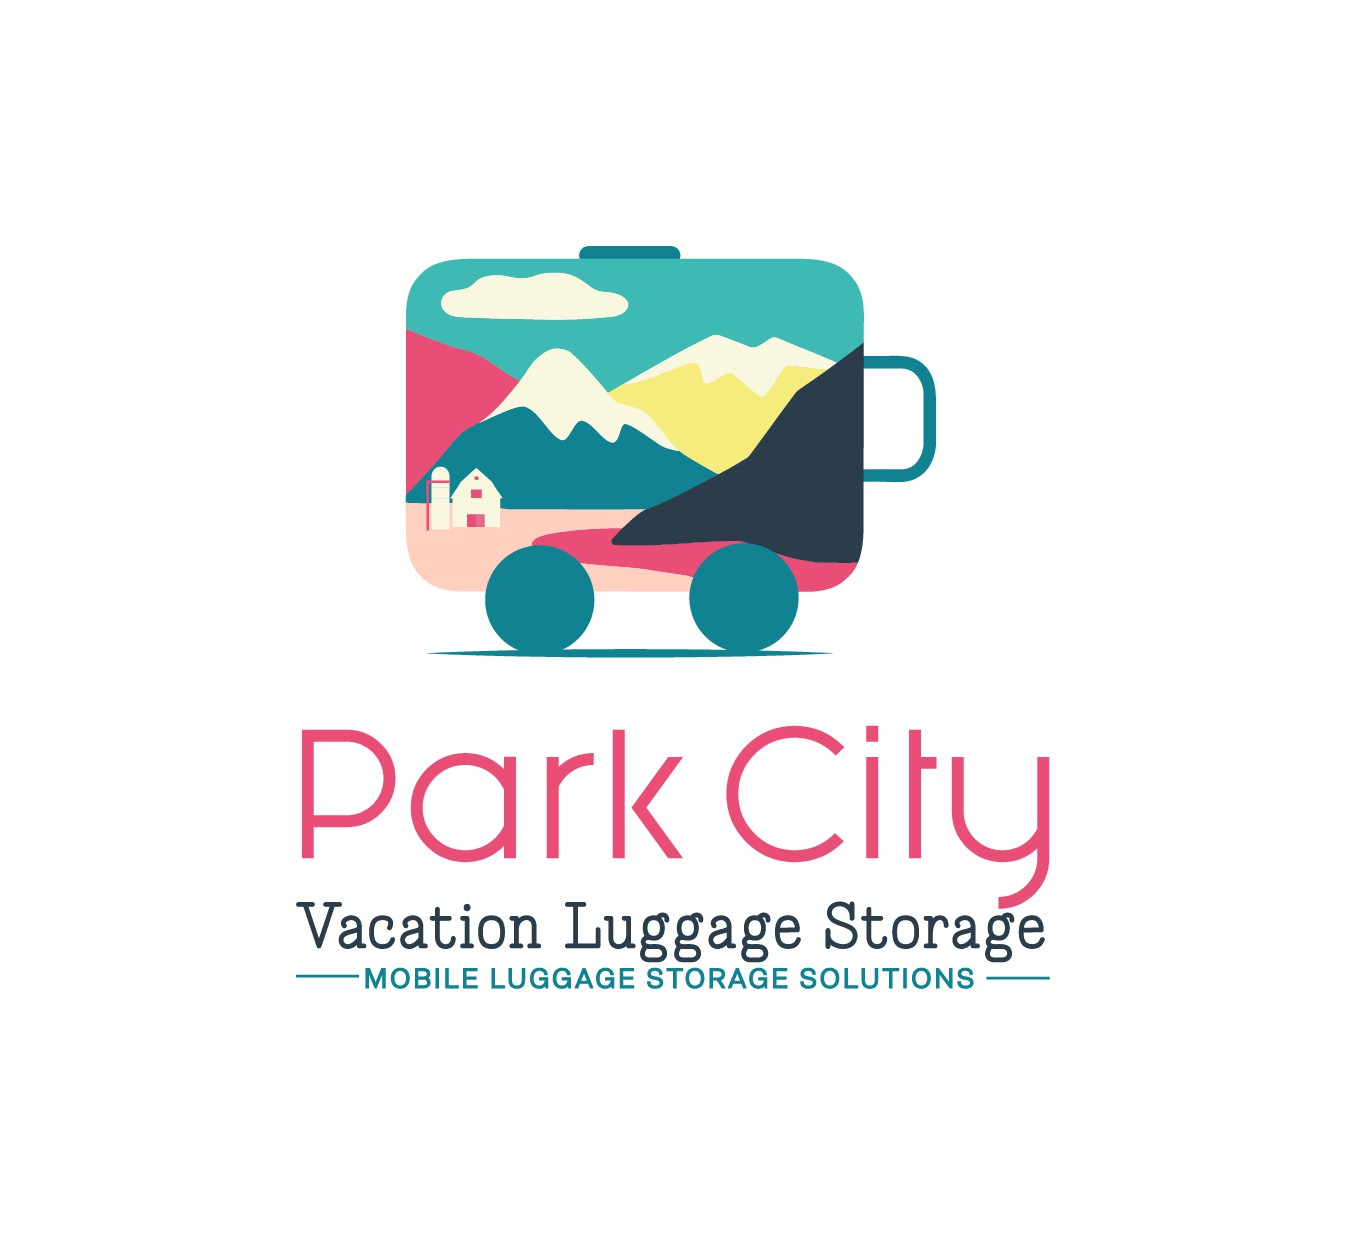 Stand out graphic logo for our Park City Start Up